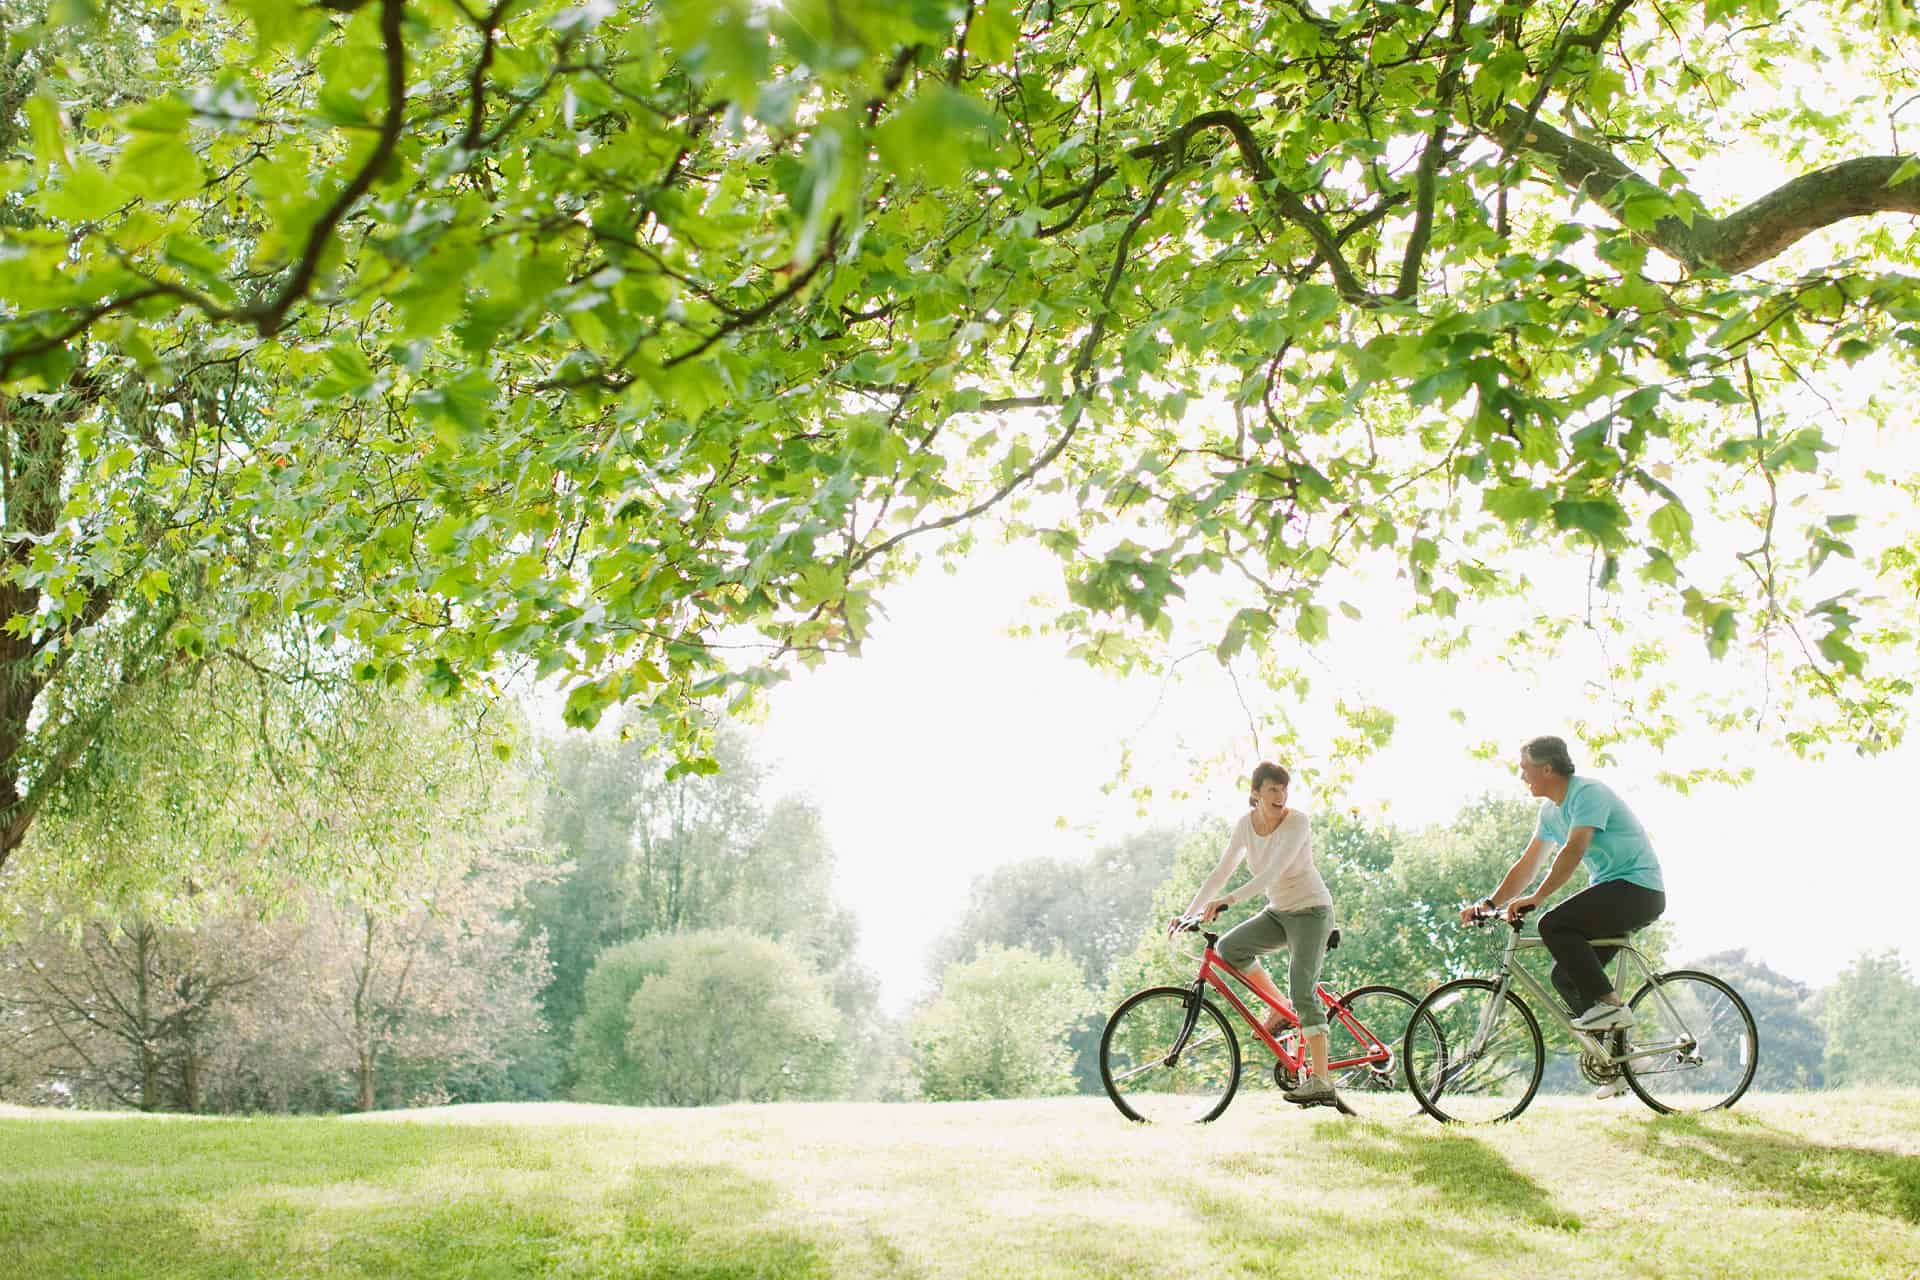 Lifestyle and Property Choices in West Sussex